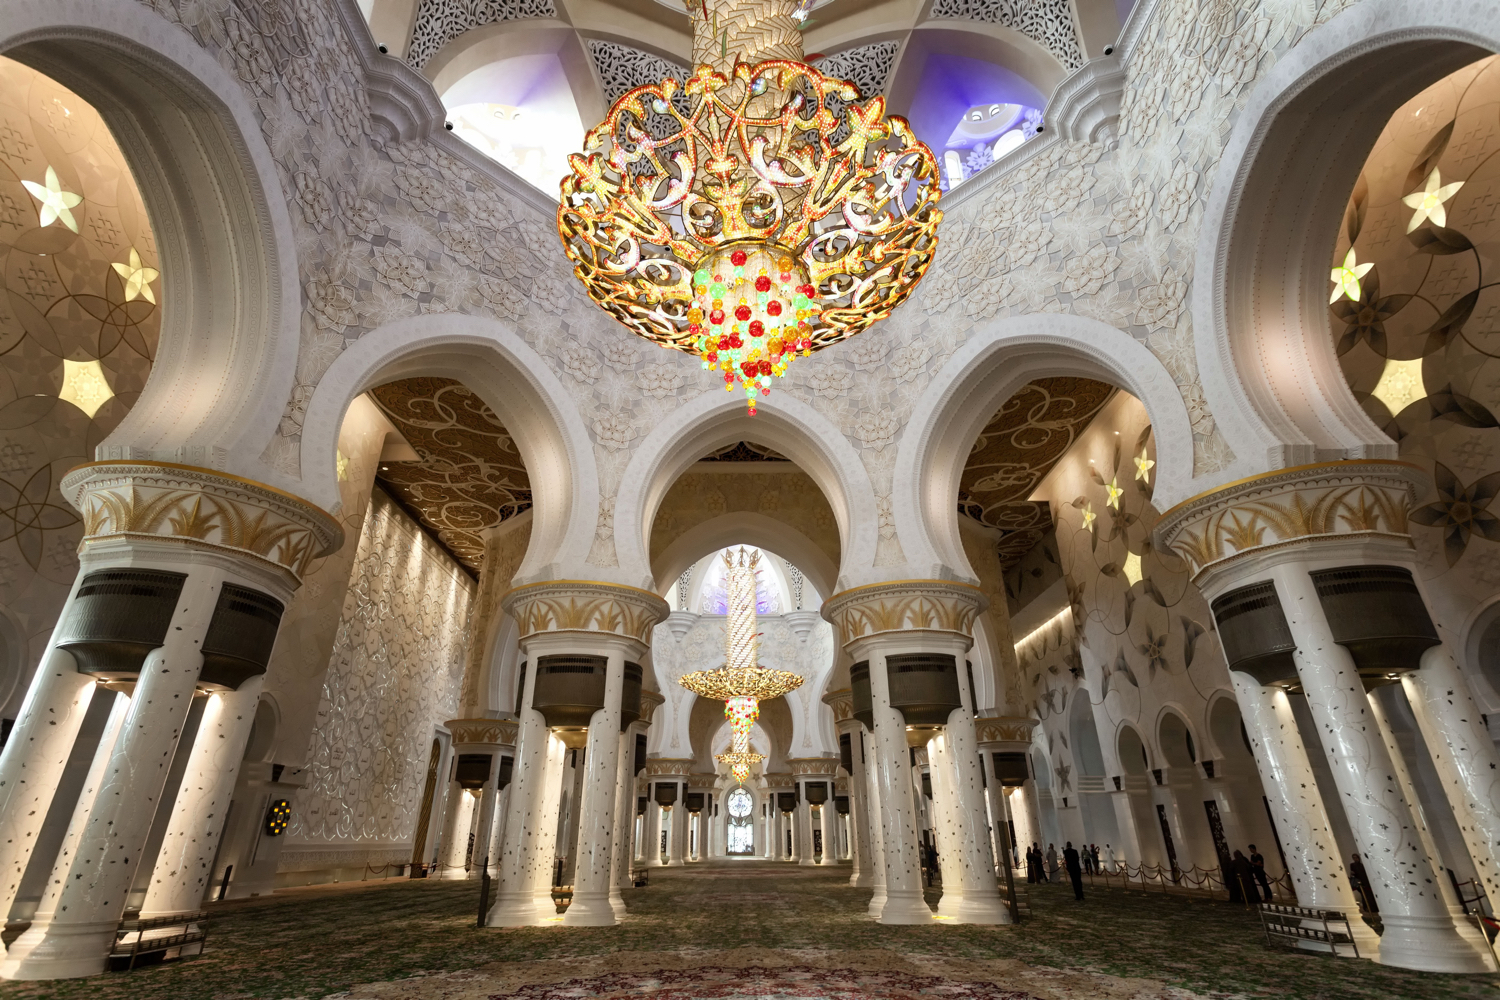 Image: The interior of the grand mosque in Abu Dhabi. This requires a wide-angle lens to capture how...